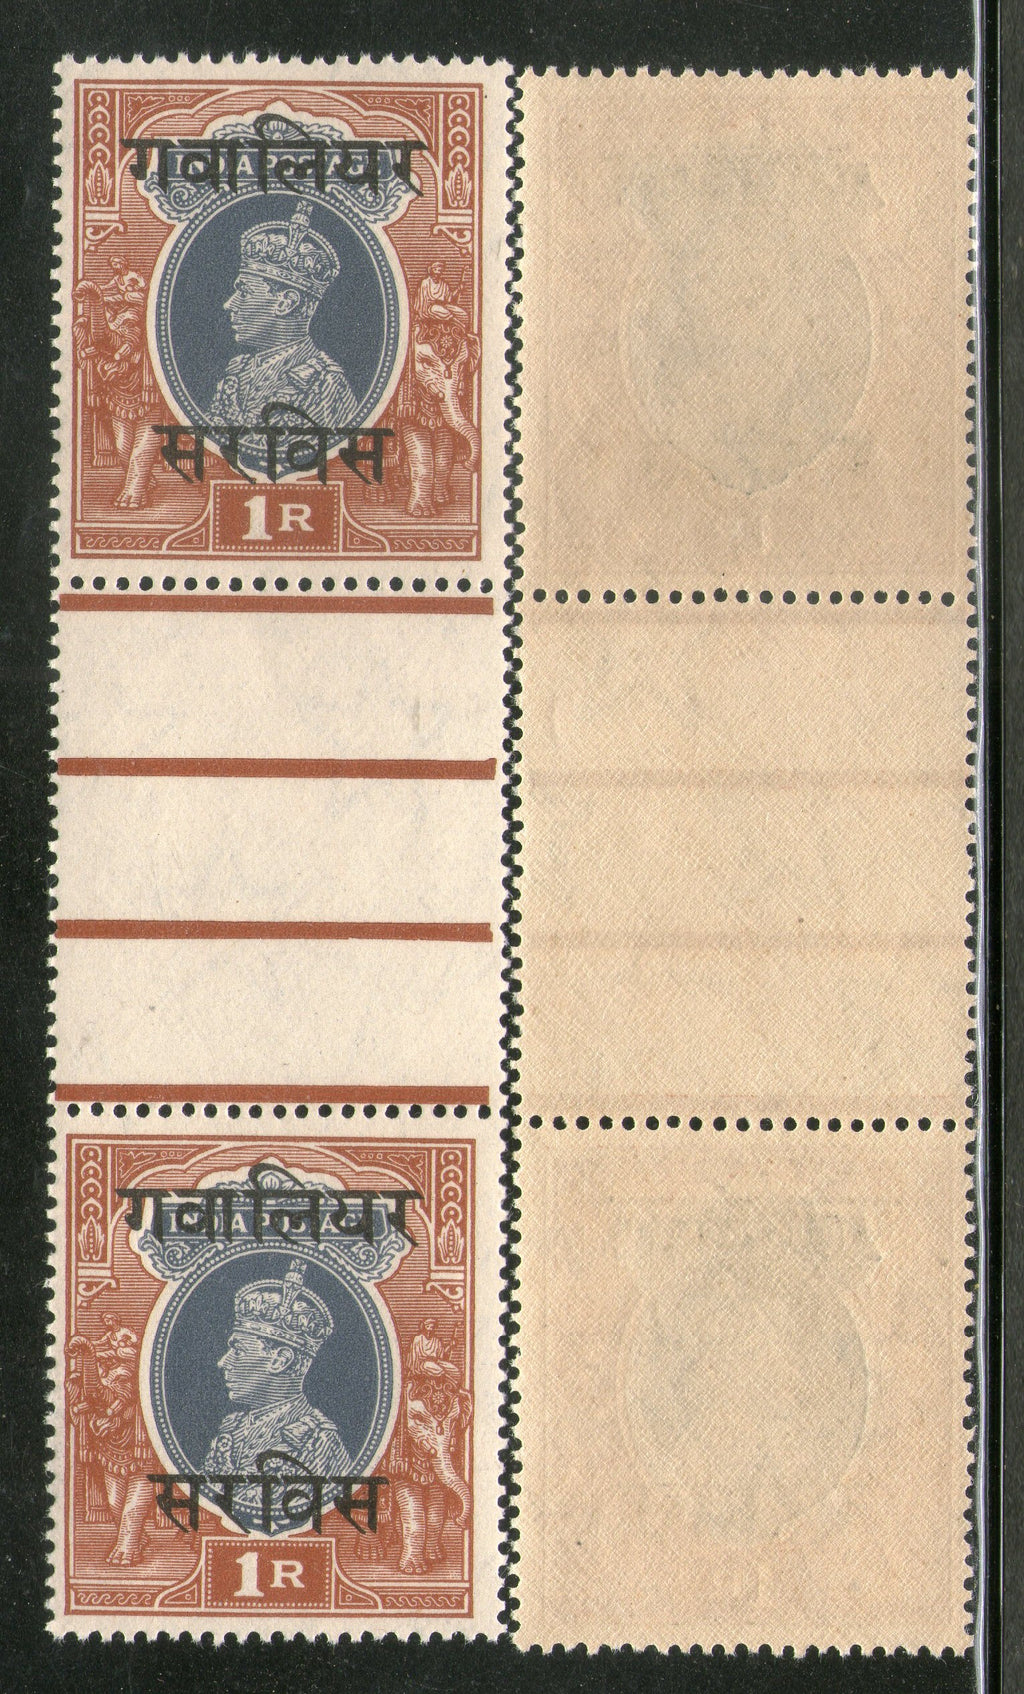 India Gwalior State 1Re KG VI Service Stamp SG O91 / Sc O48 Vertical Gutter Pair MNH - Phil India Stamps